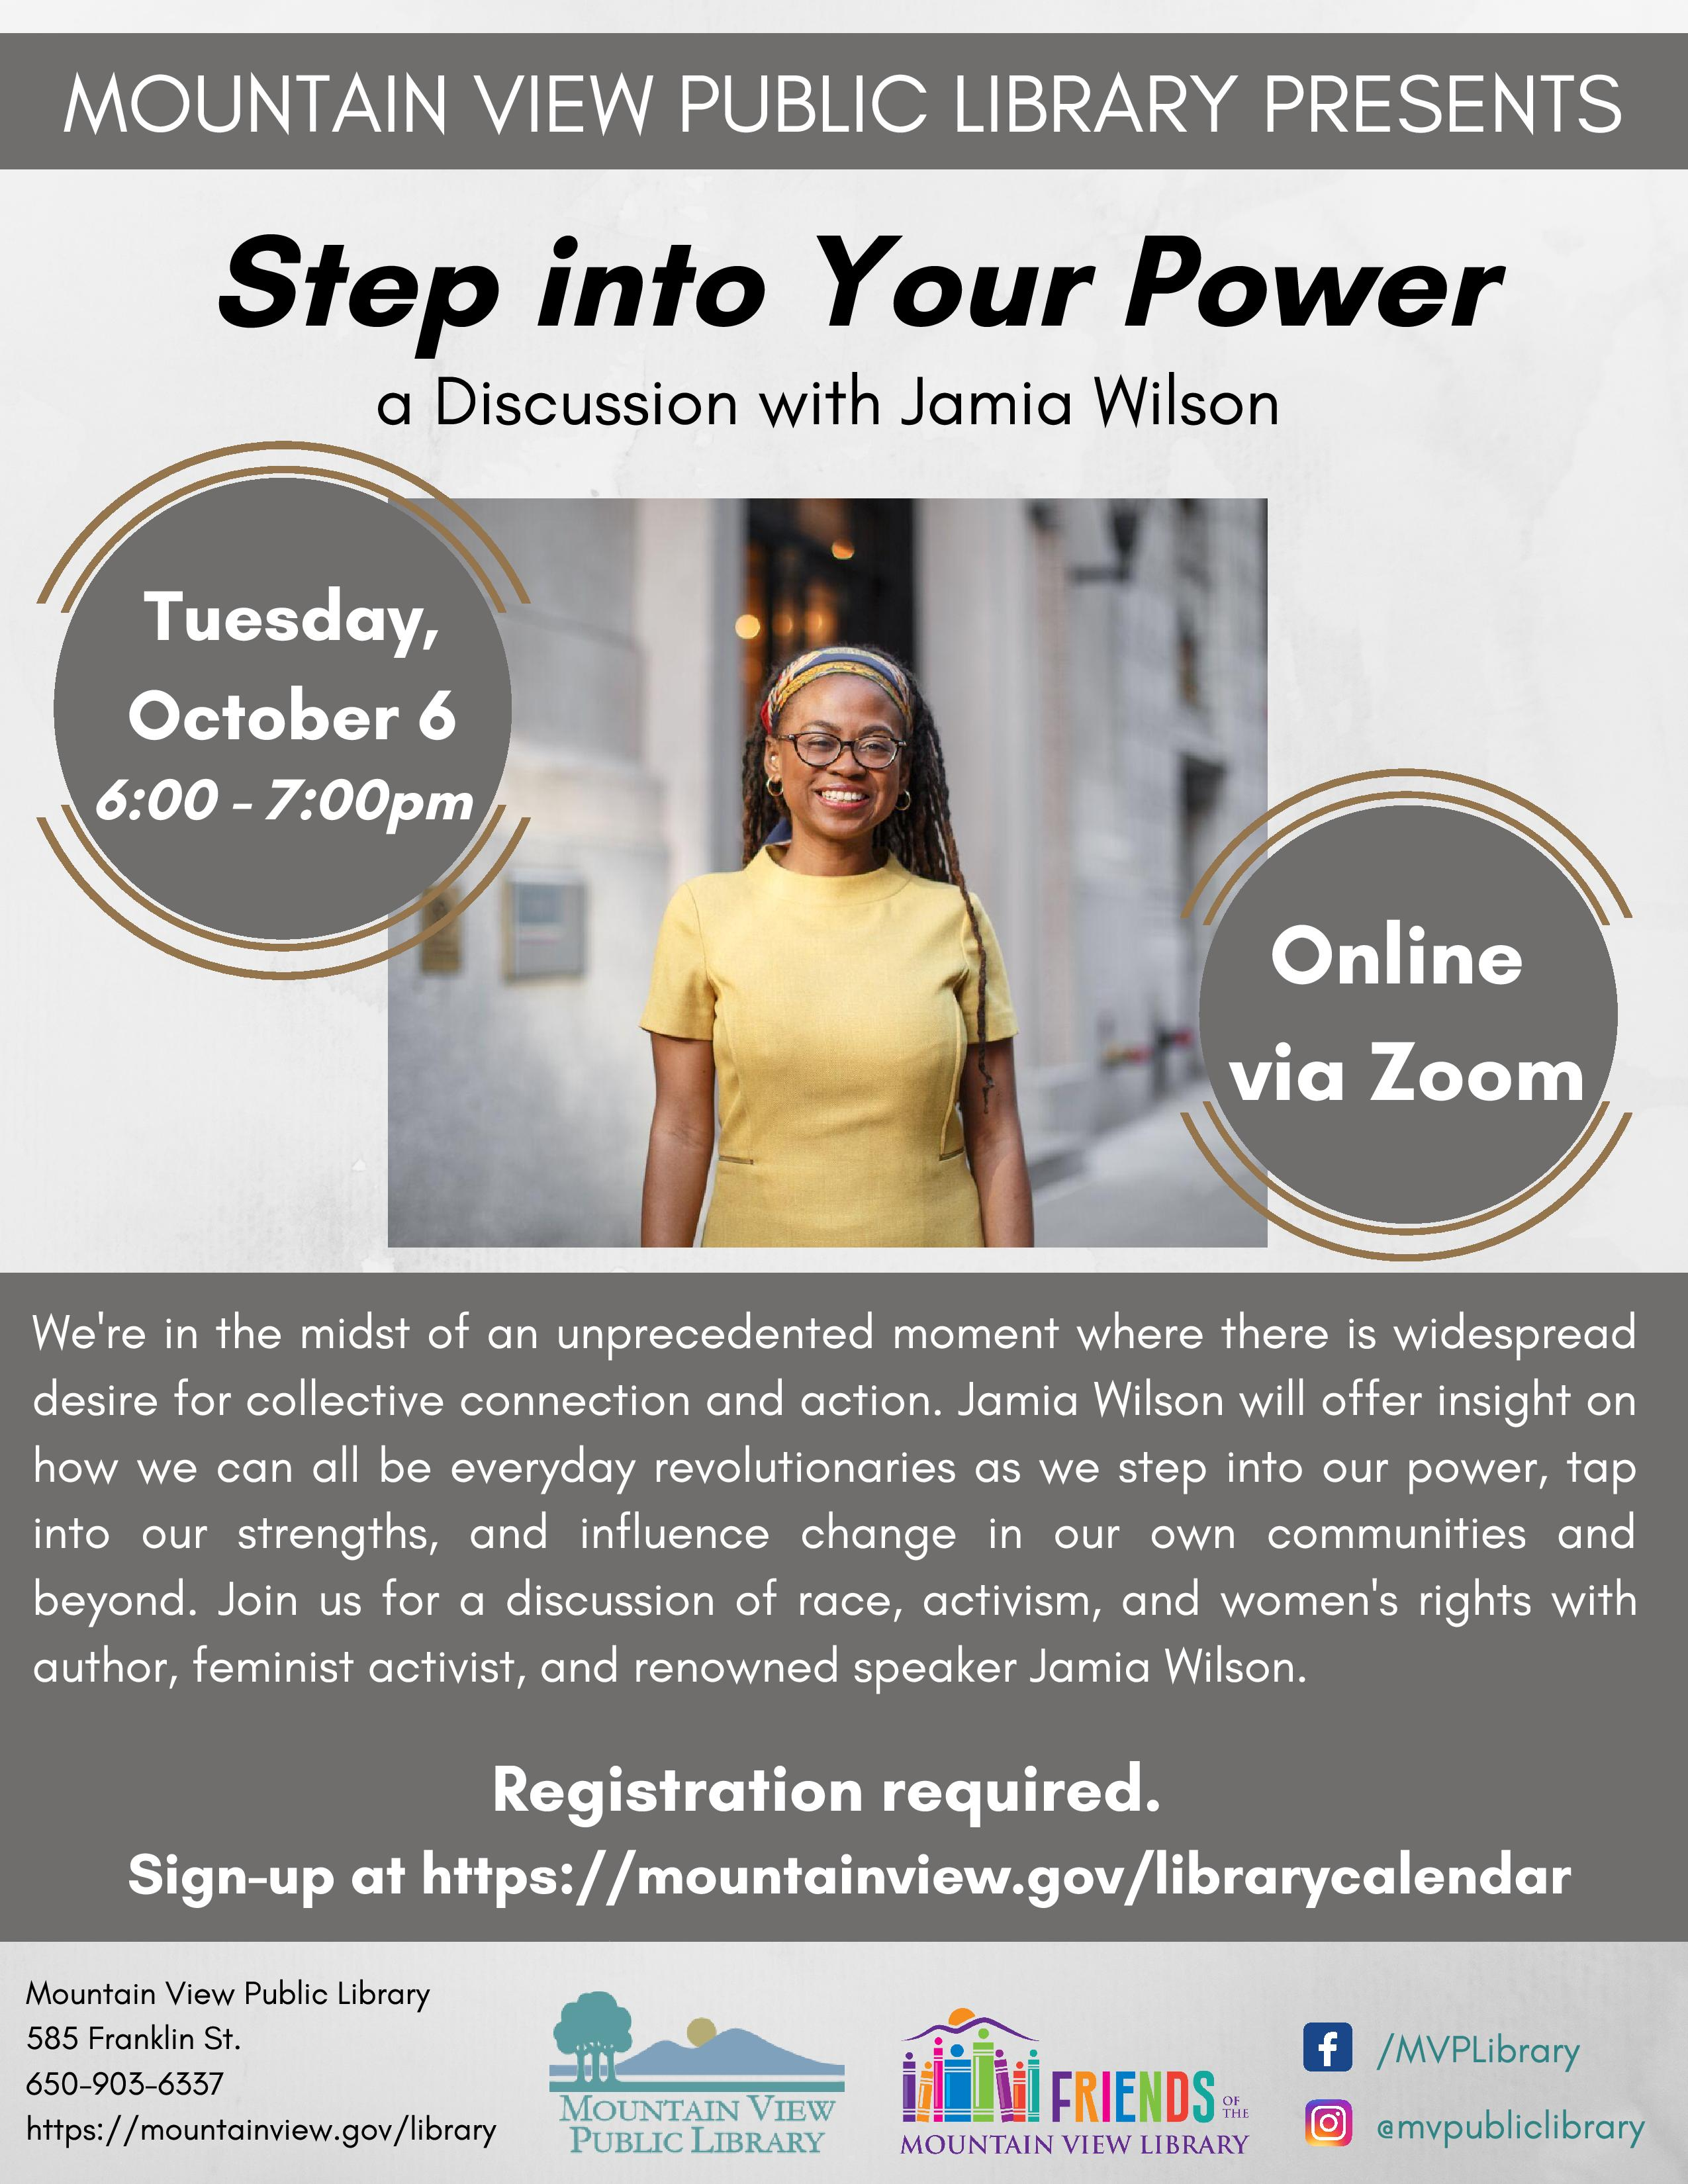 Step into Your Power: a discussion with Jamia Wilson